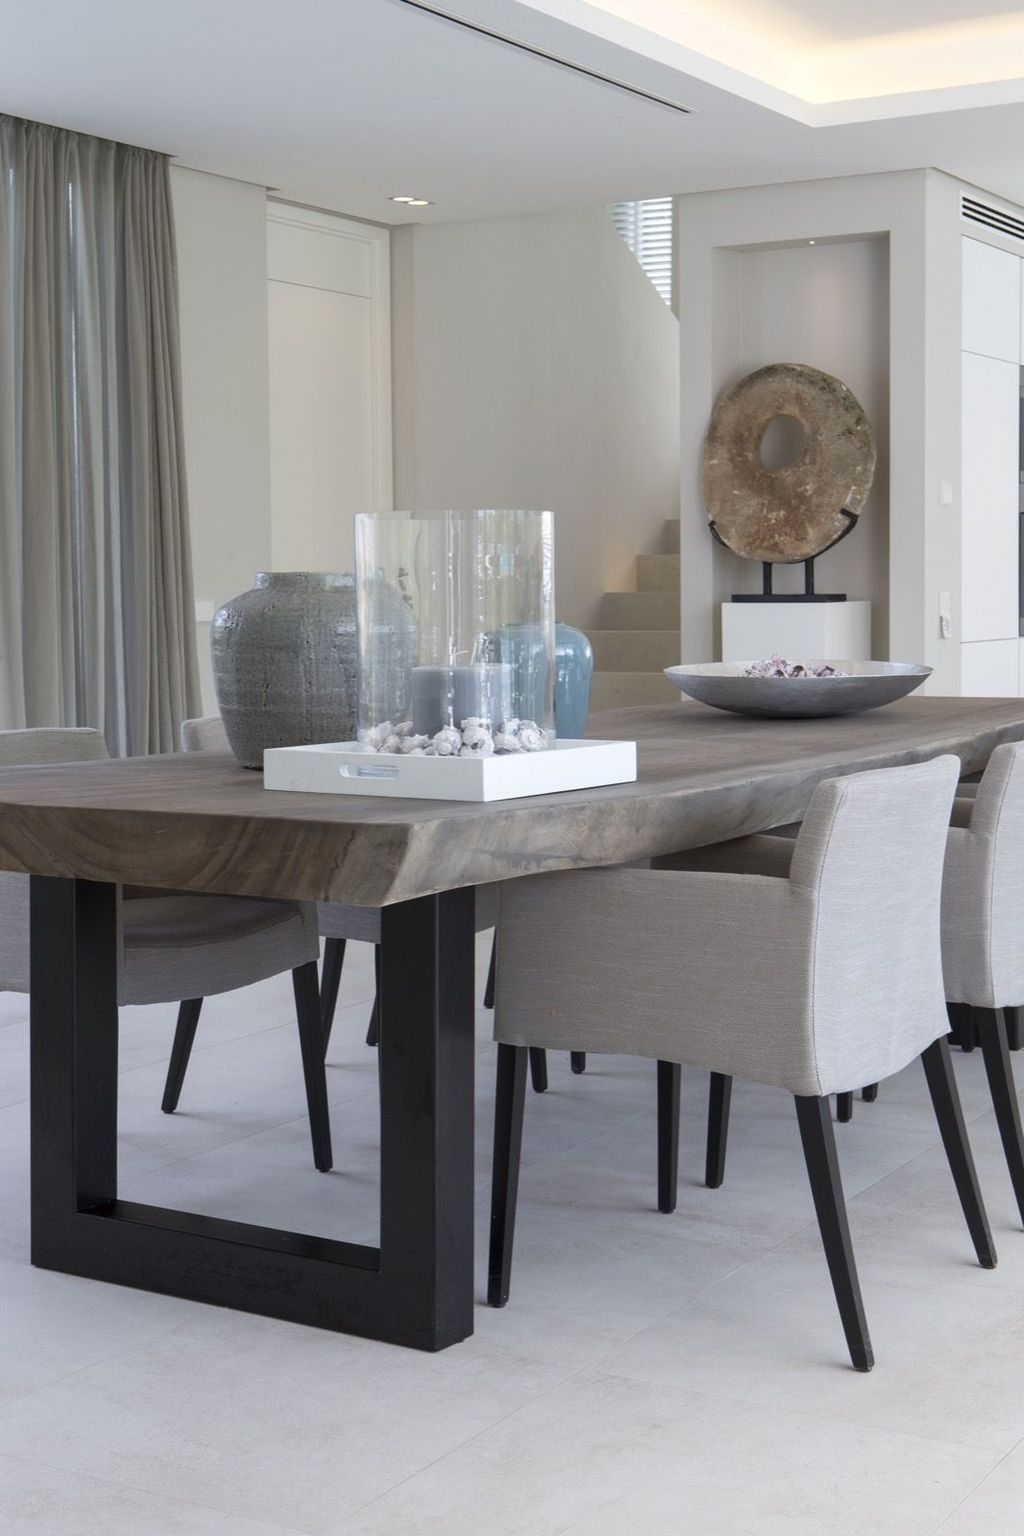 48 Elegant Modern Dining Table Design Ideas In 2020 With Images